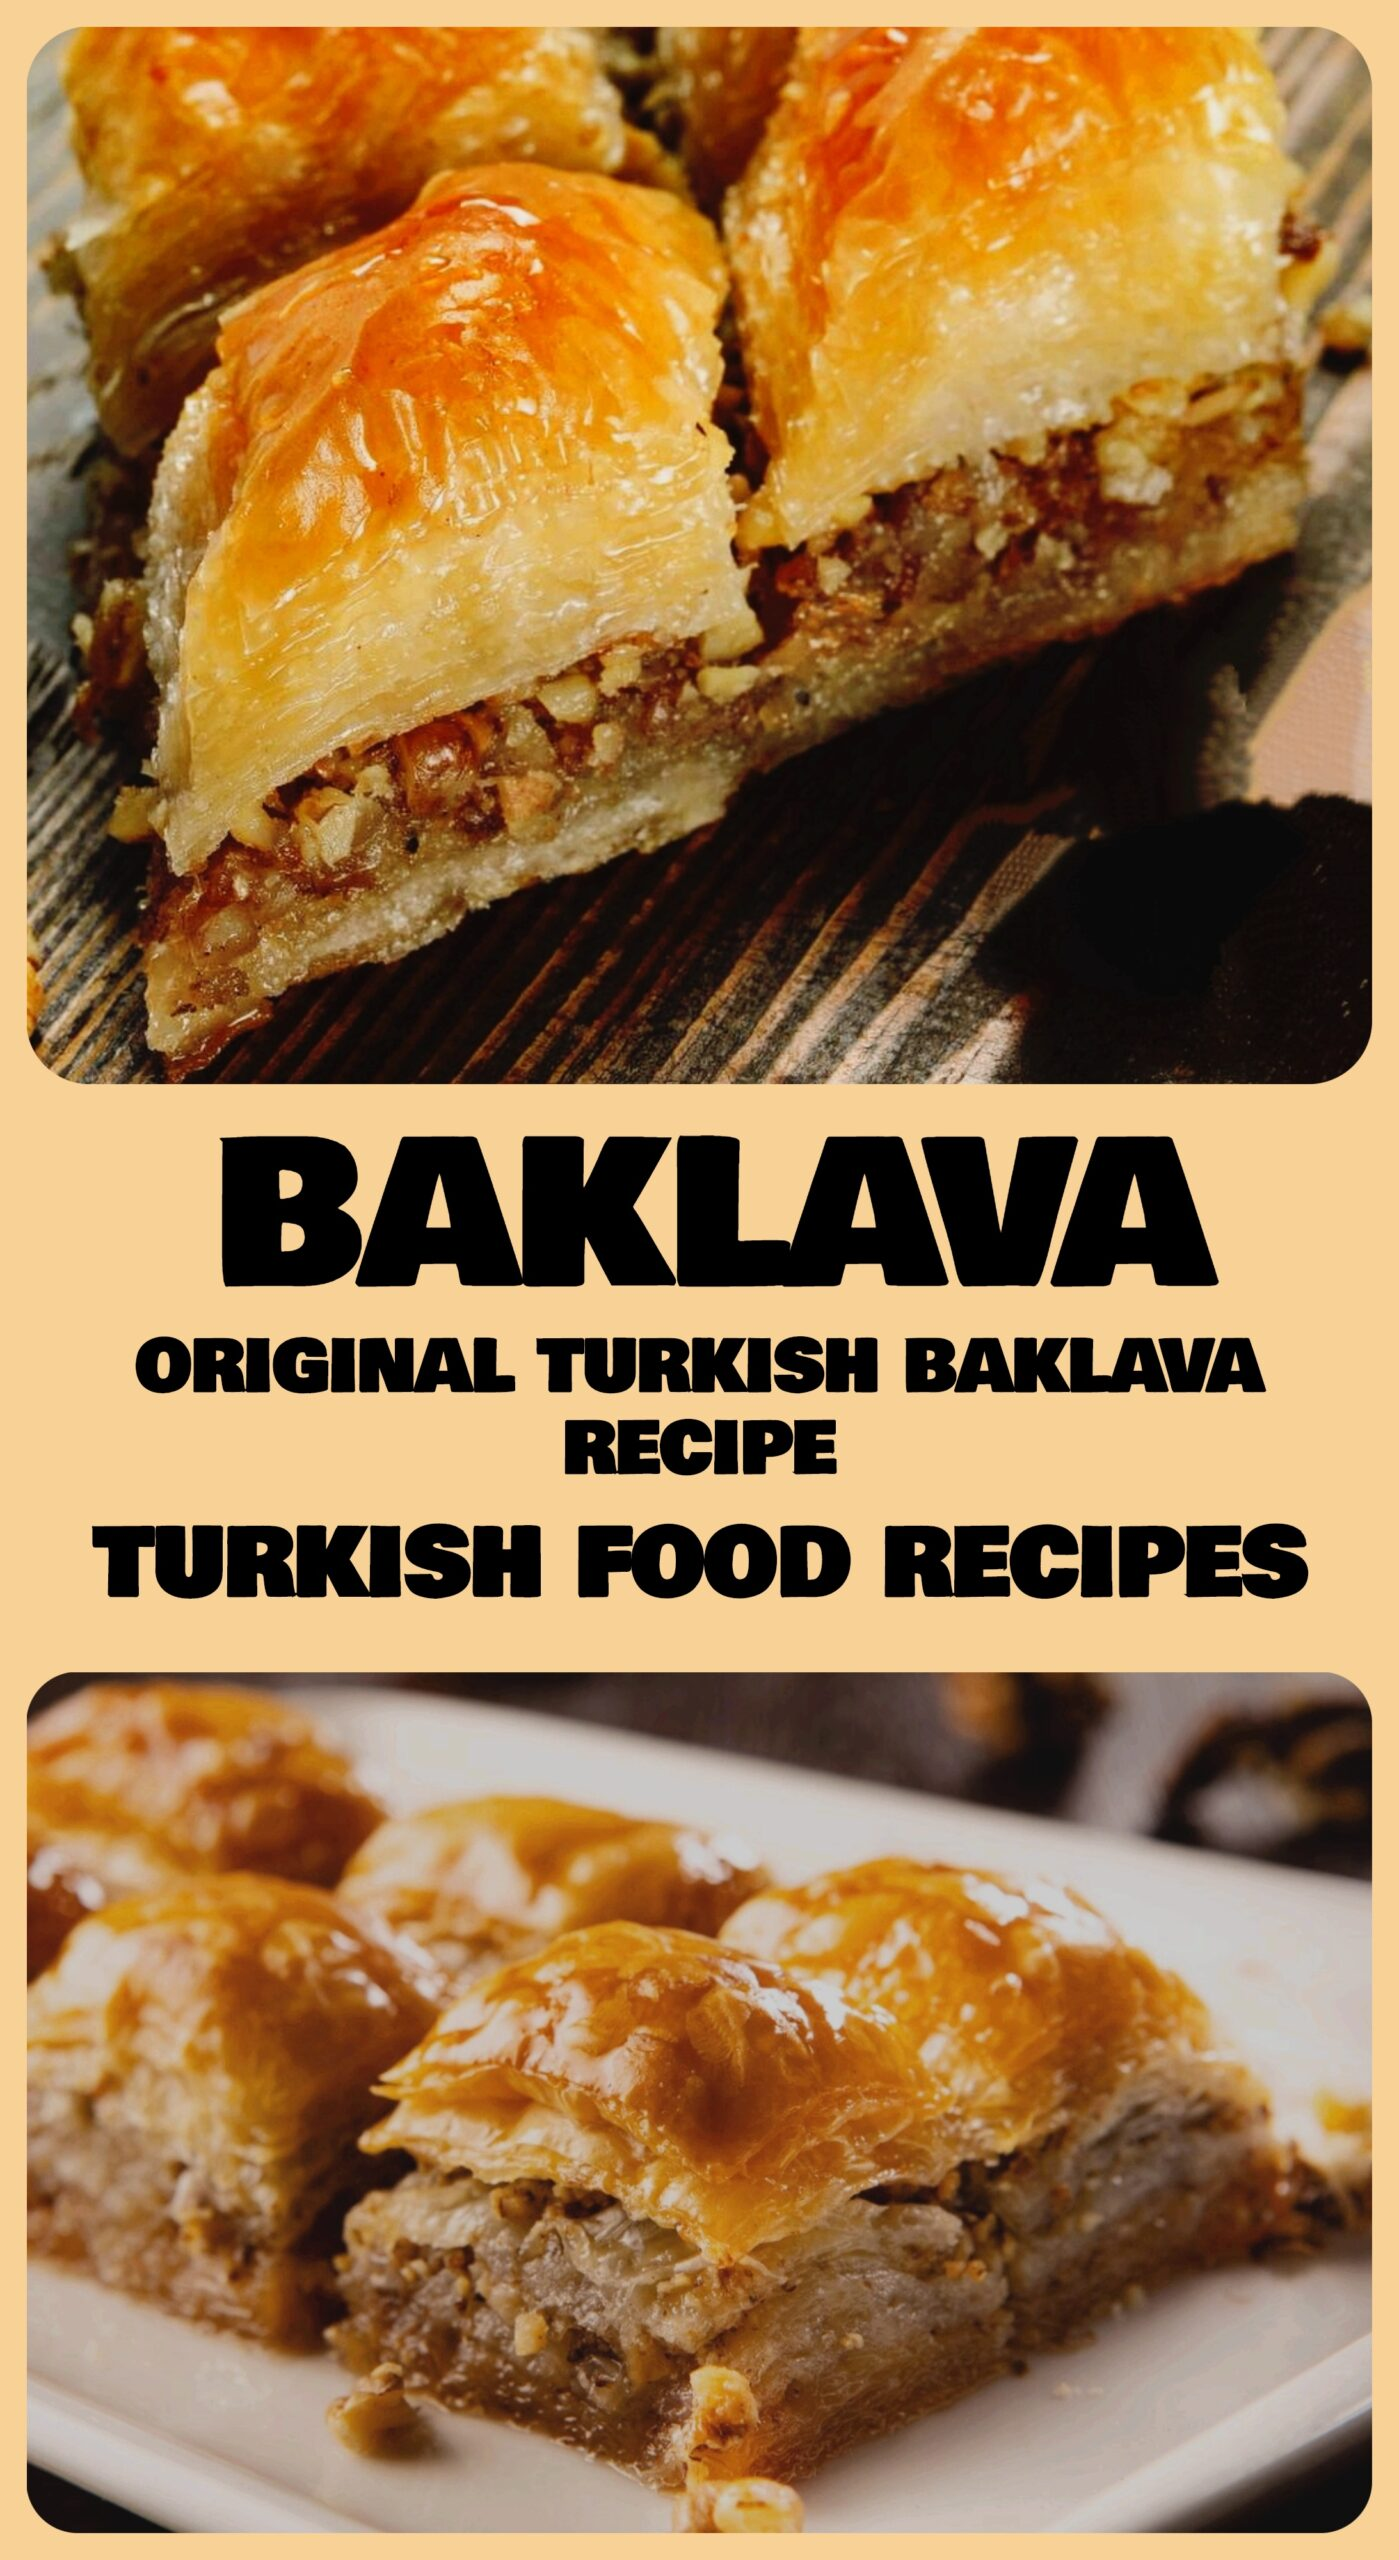 Baklava (Original Turkish Baklava Recipe)